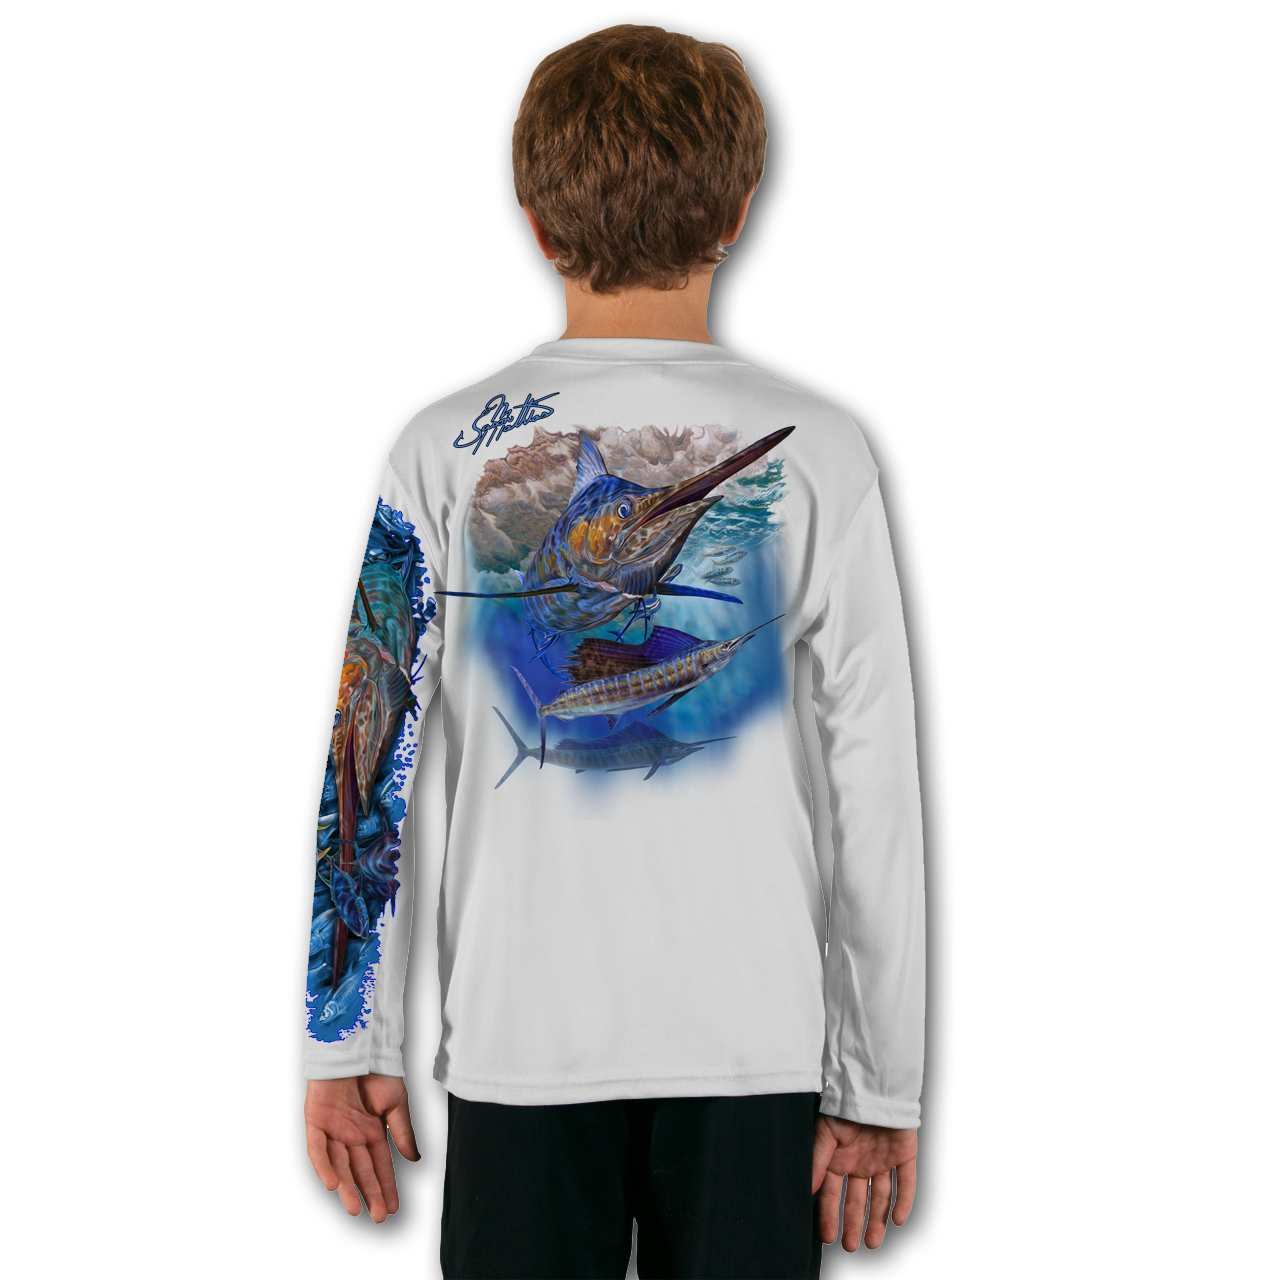 blue-marlin-sailfish-white-youth-solar-ls-back-performance-shirt.png